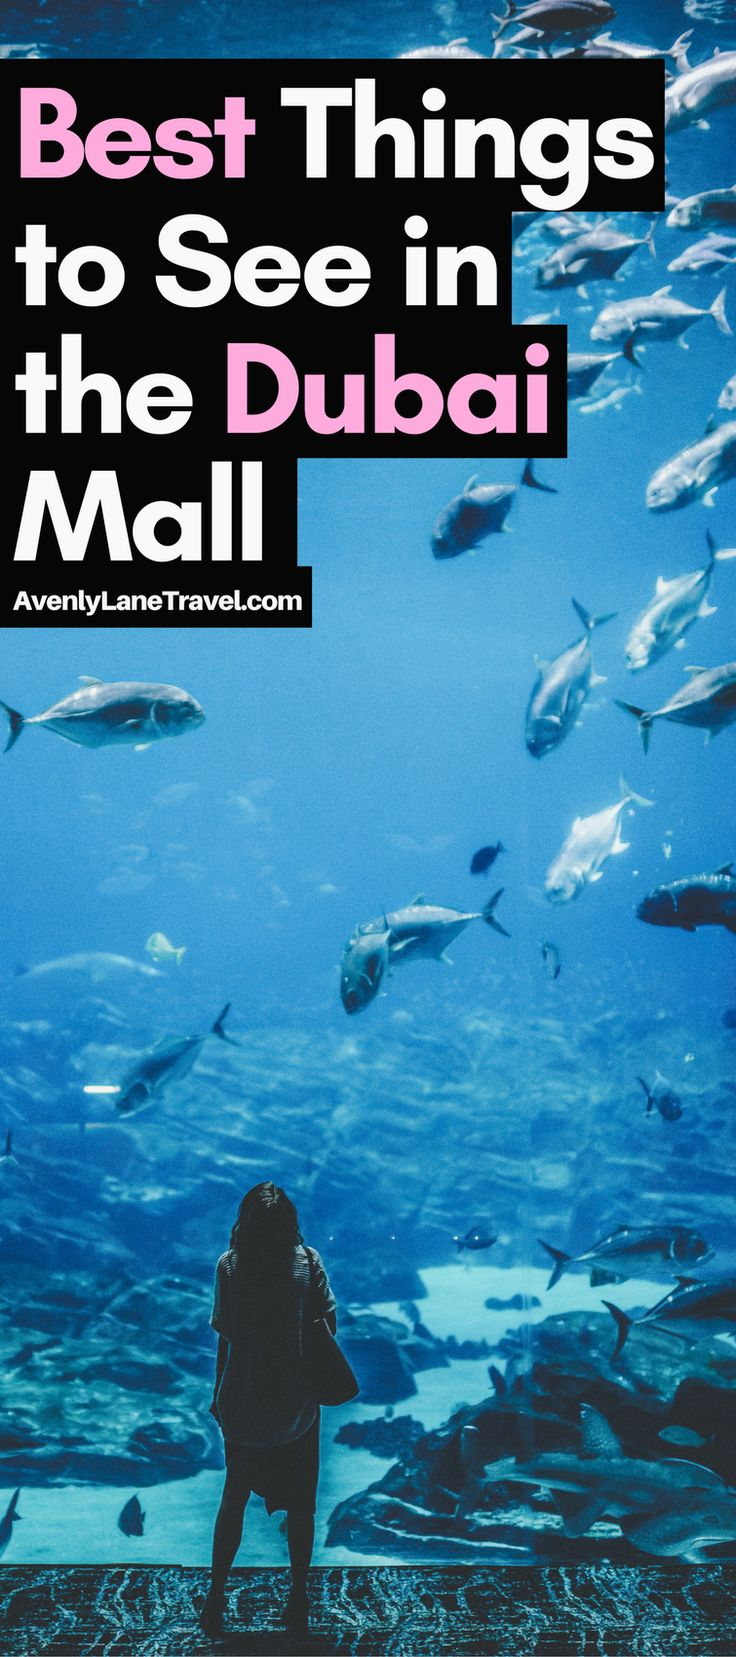 Dubai tourist attractions: The Incredible Dubai Mall.  Dubai unabashedly aims to be the biggest, best, and most modern city on earth, and it may be getting close to claiming that title!  Find out what things you can't miss when visiting The Dubai Mall on Avenlylanetravel.com. #avenlylanetravel #dubai #travel